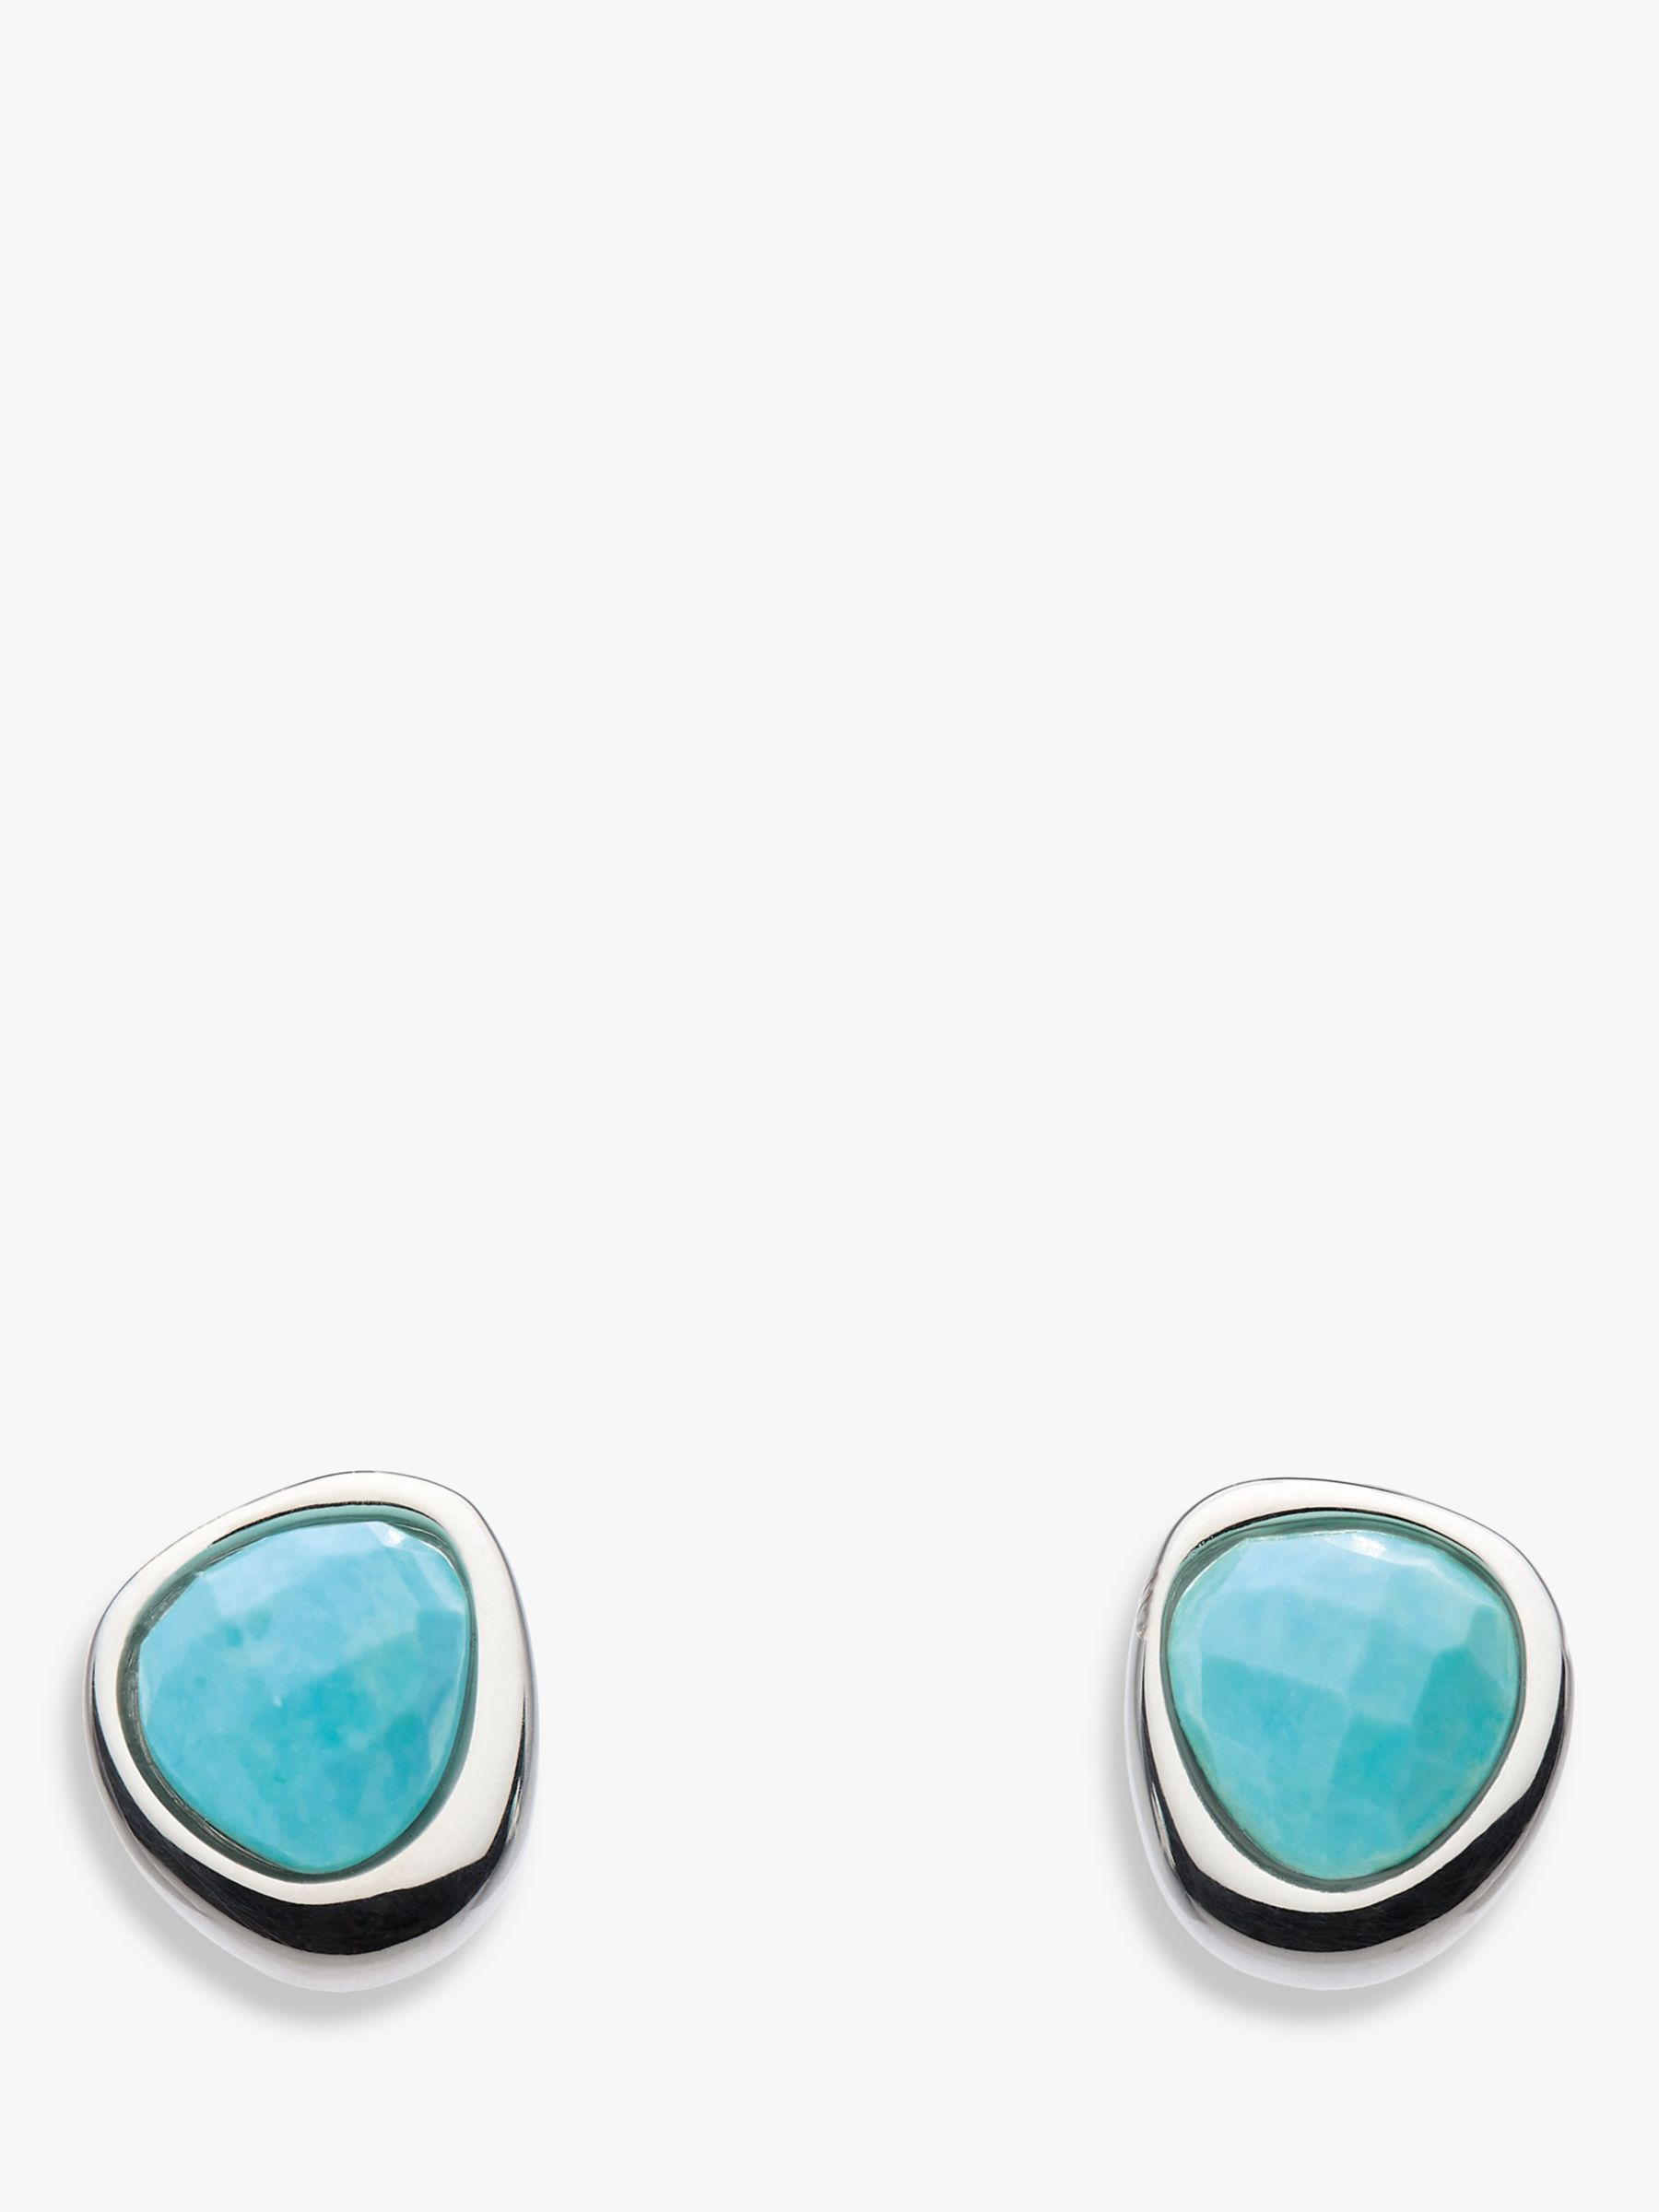 jewellery turquoise birthstone zoom simply stud silver earrings sterling earring emerald green may